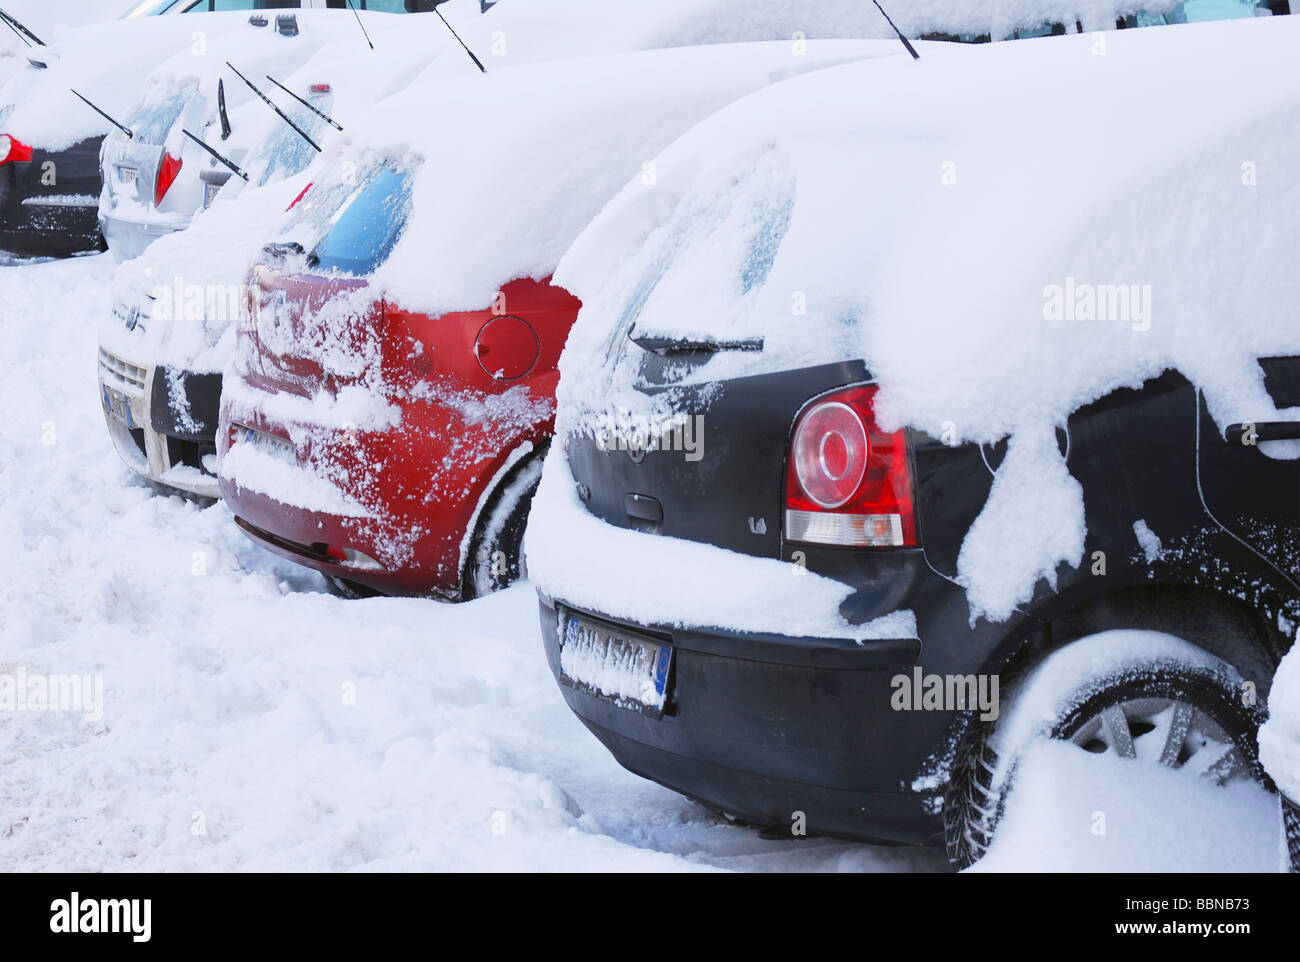 snow covered parked cars - Stock Image